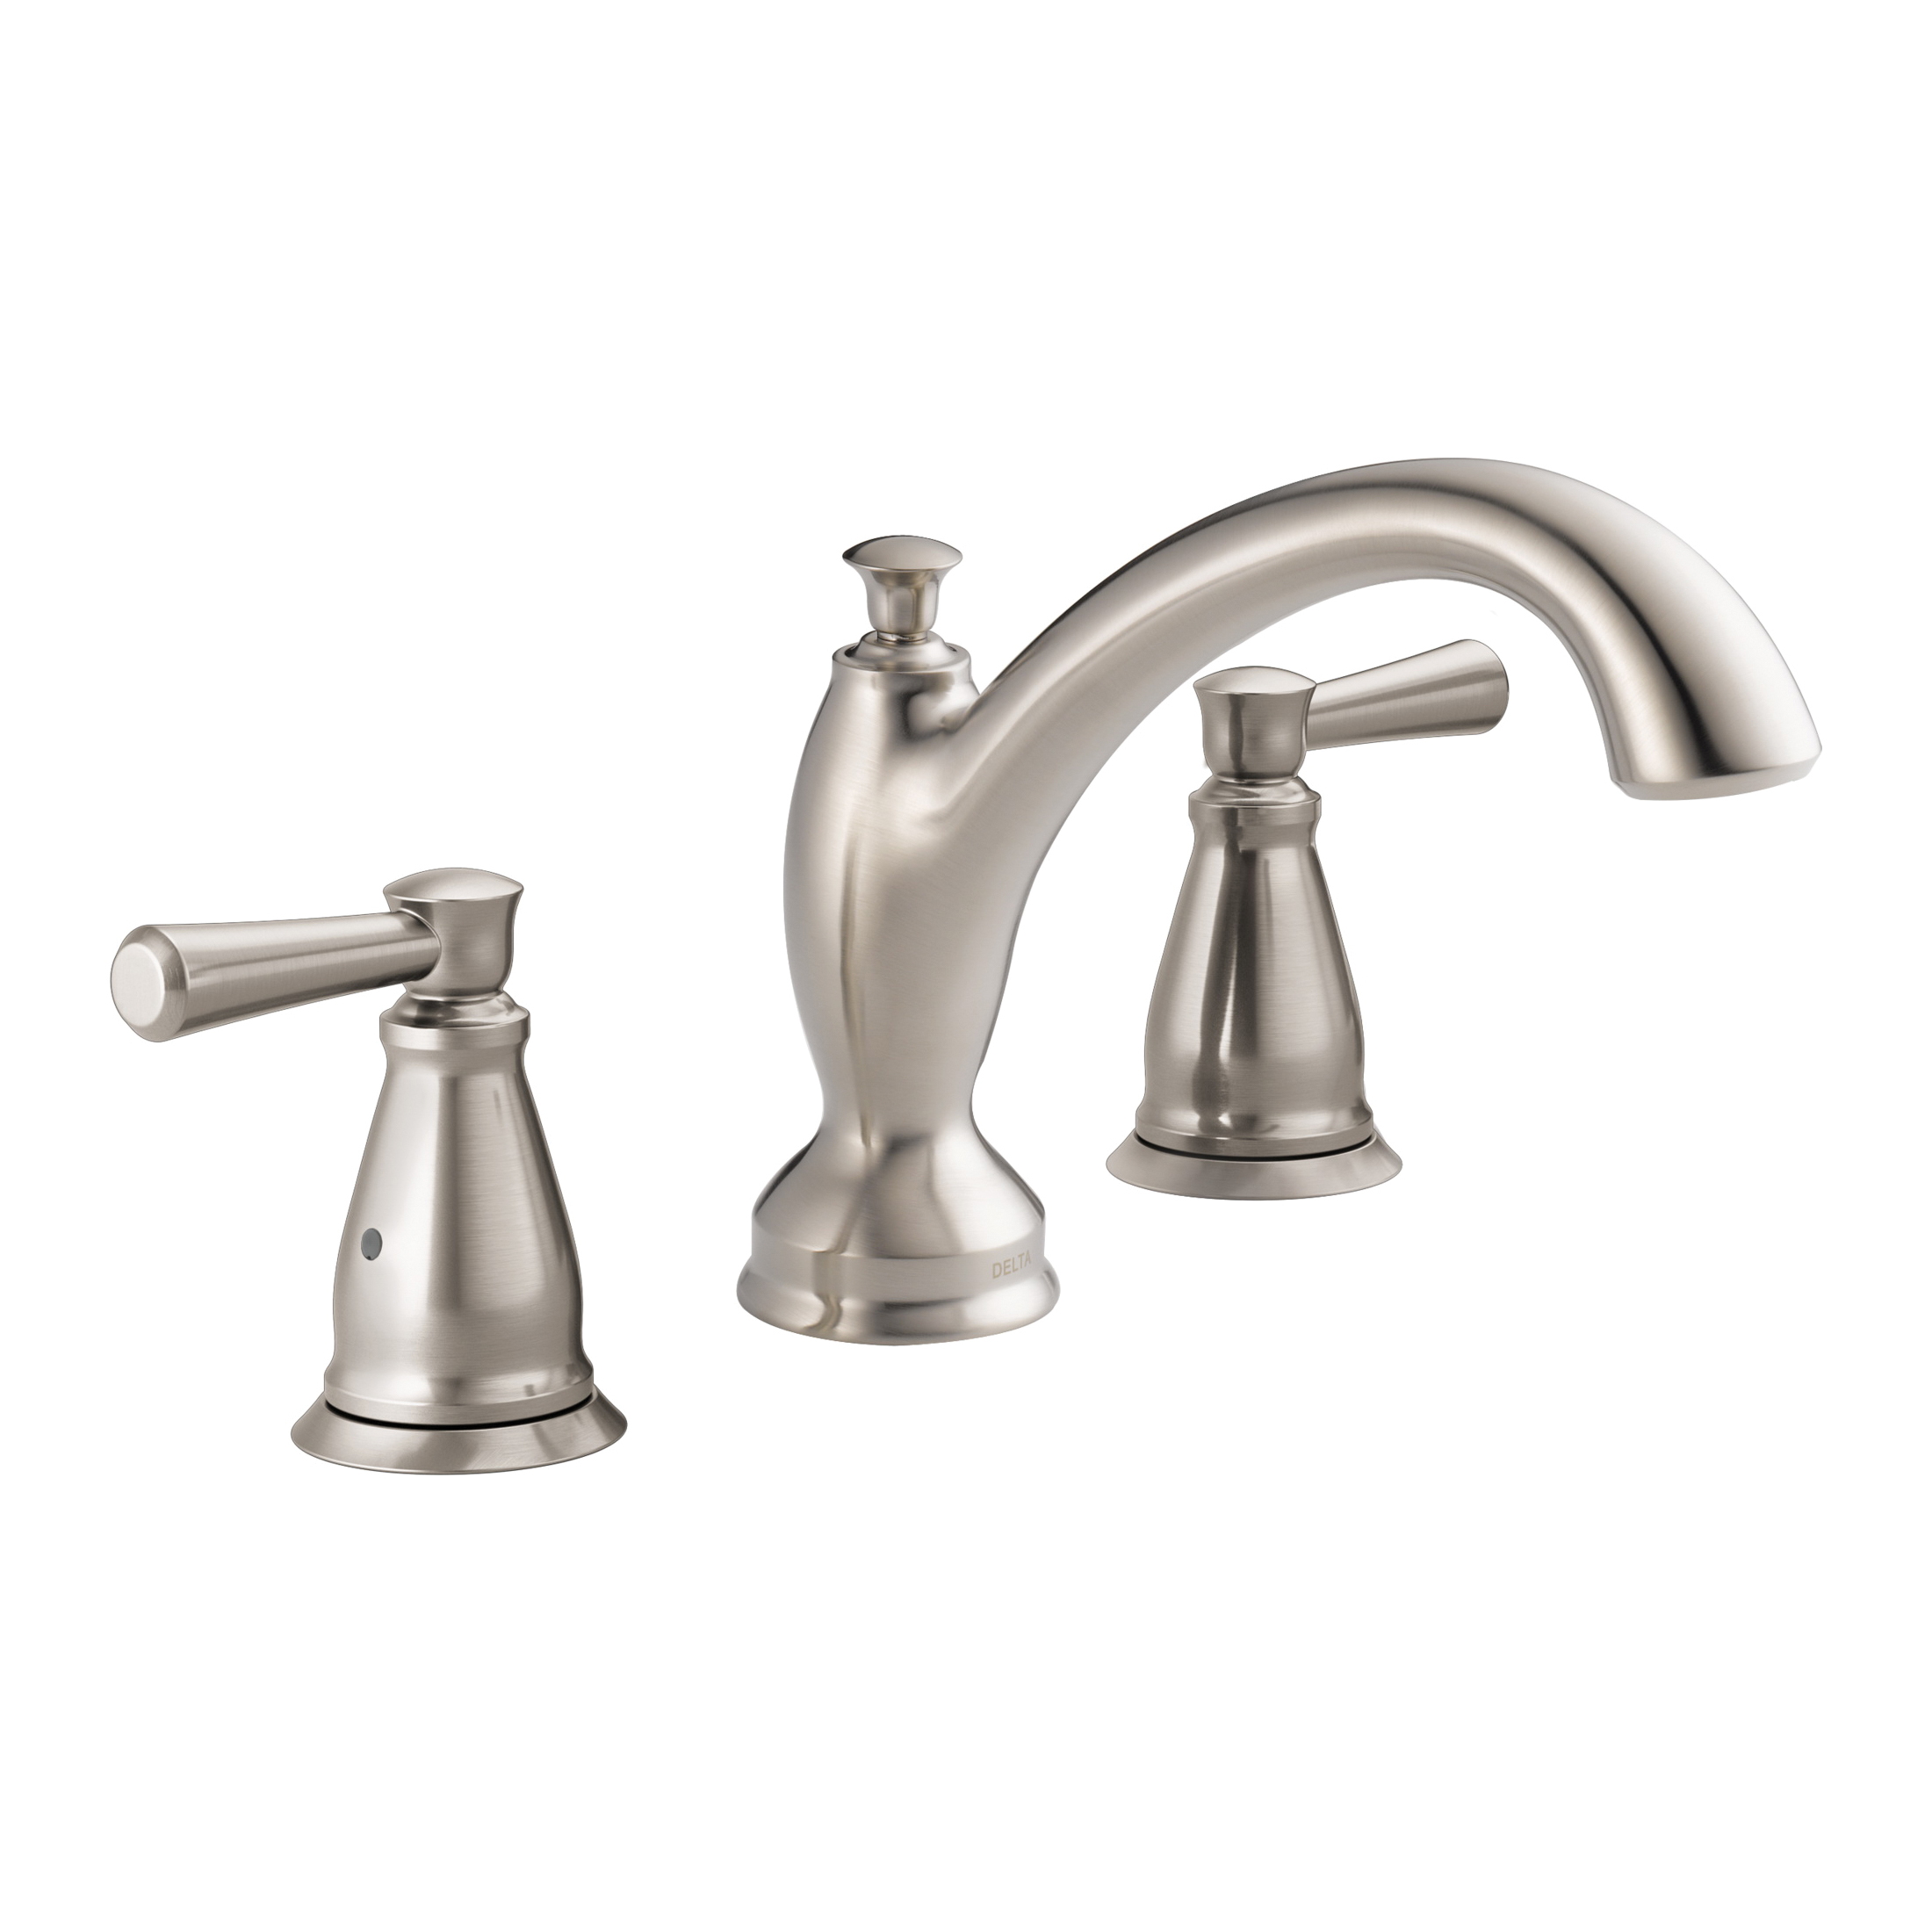 Consolidated Supply Co. | DELTA® T2793-SS Linden™ Roman Tub Trim ...